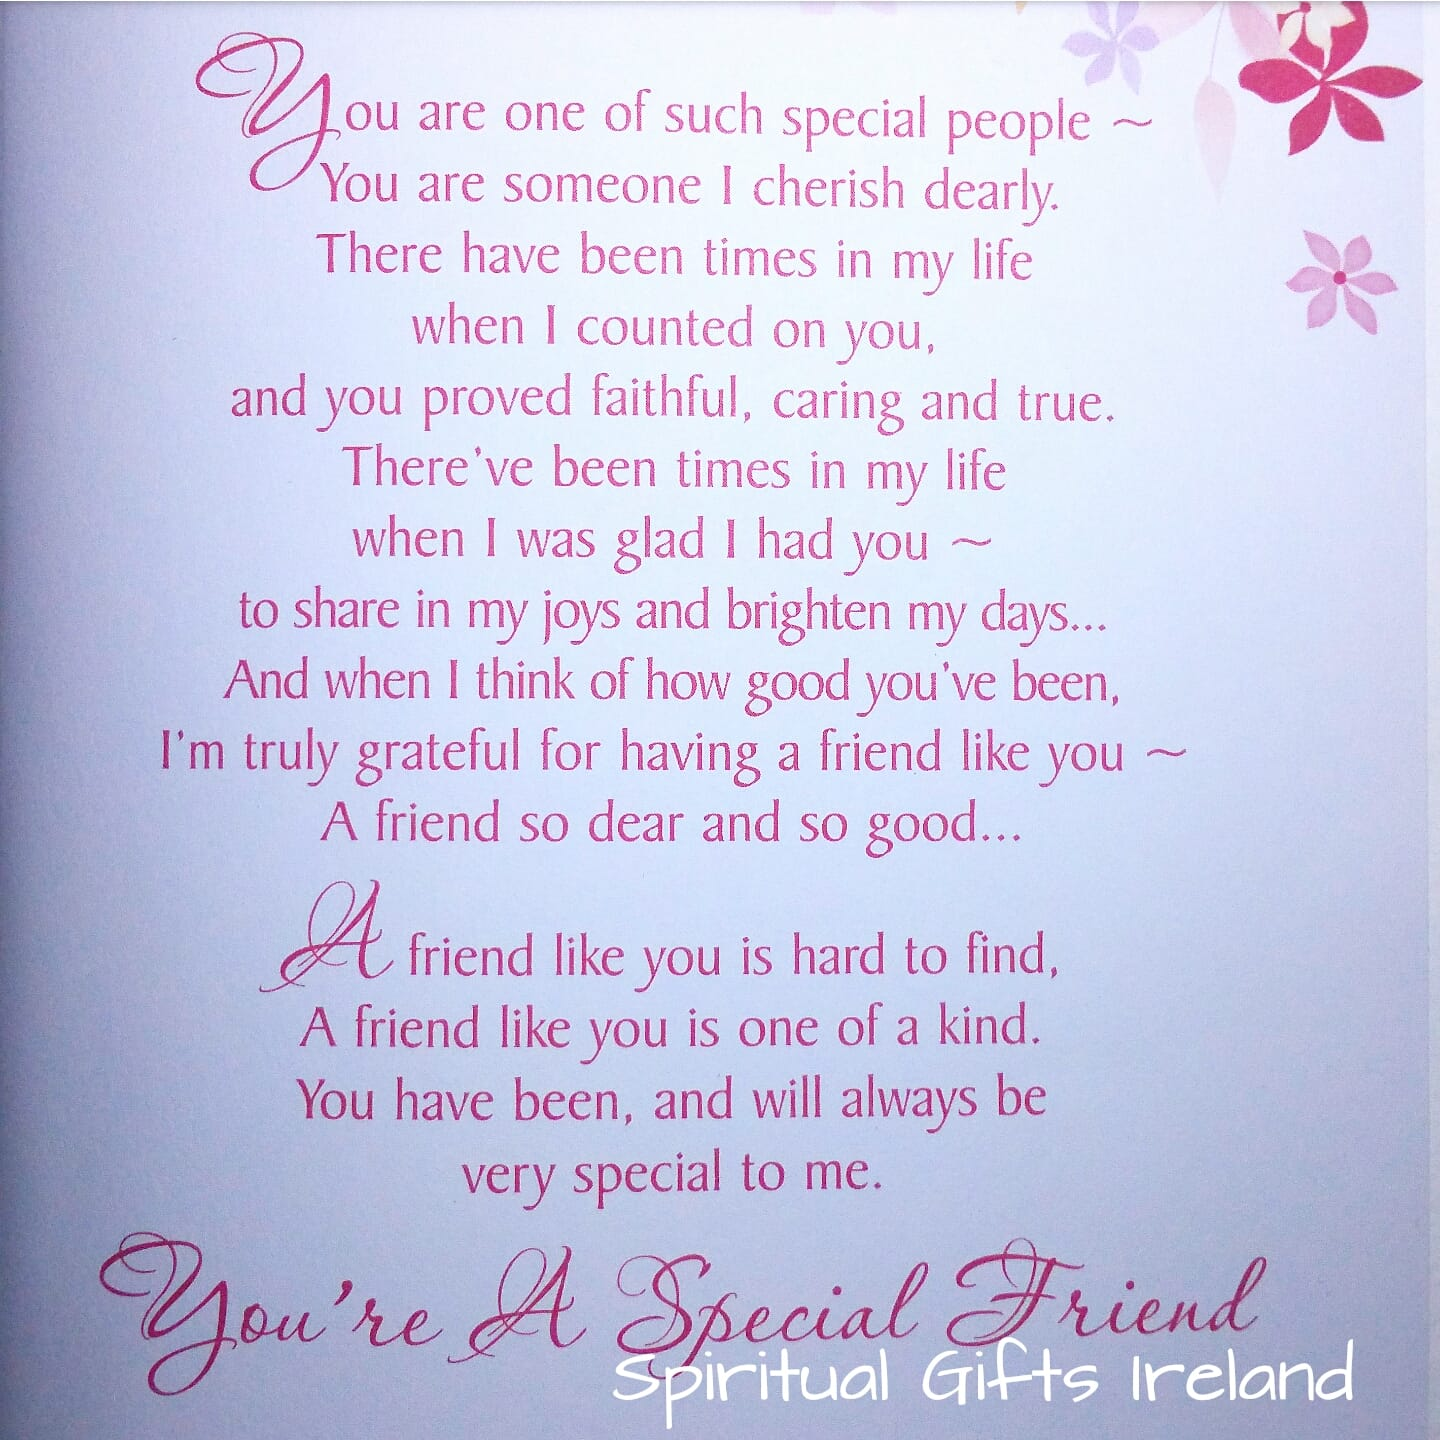 Special friends inspirational greeting card spiritual gifts ireland special friends inspirational greeting card screenshot2016 06 06 19 43 19 kristyandbryce Image collections